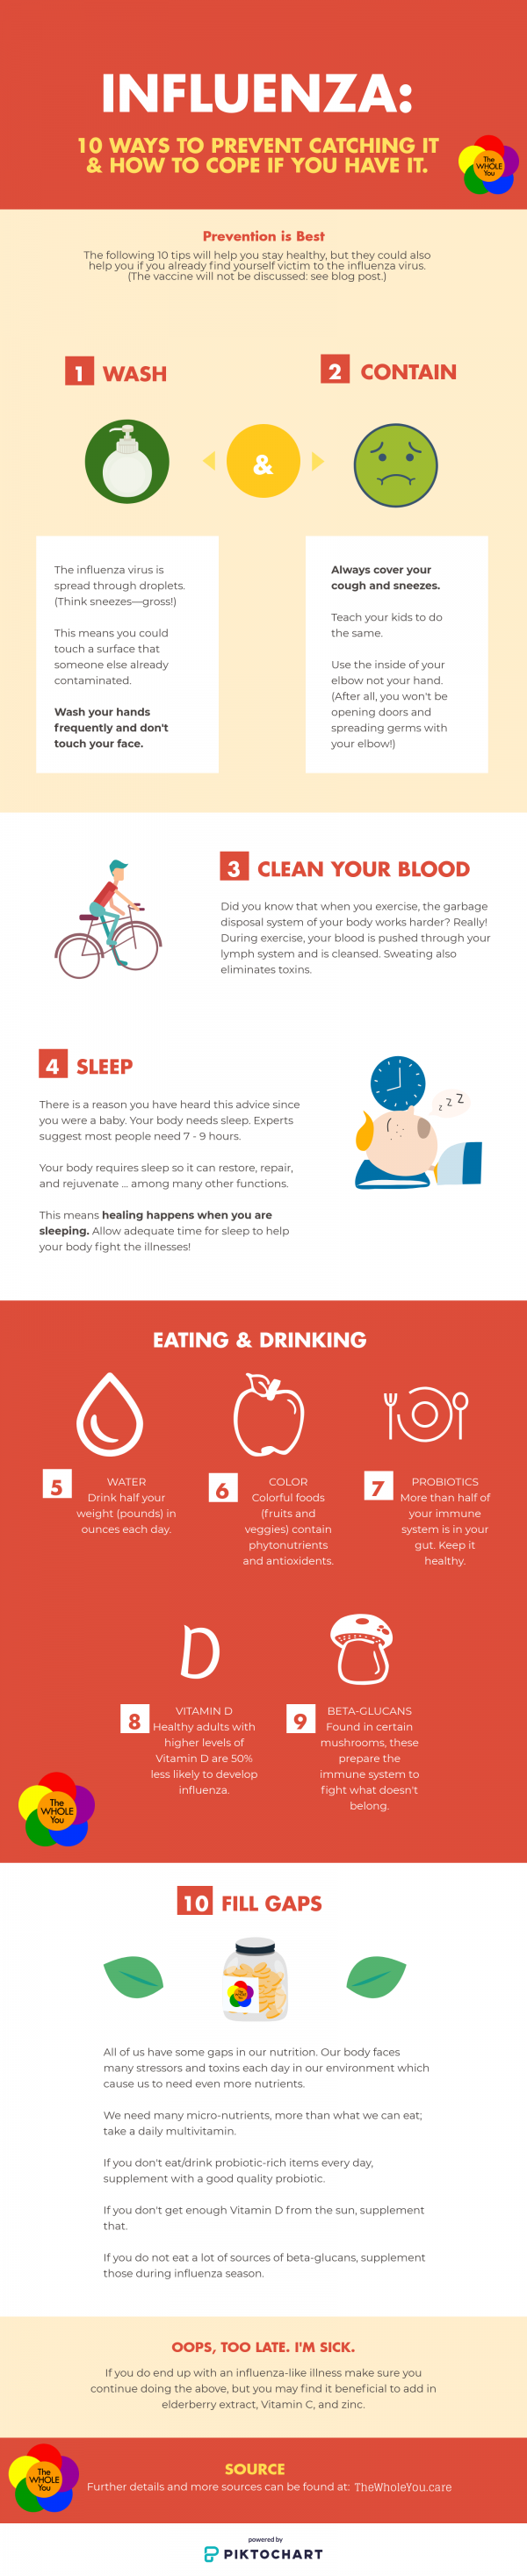 10 ways to stay healthy during influenza season